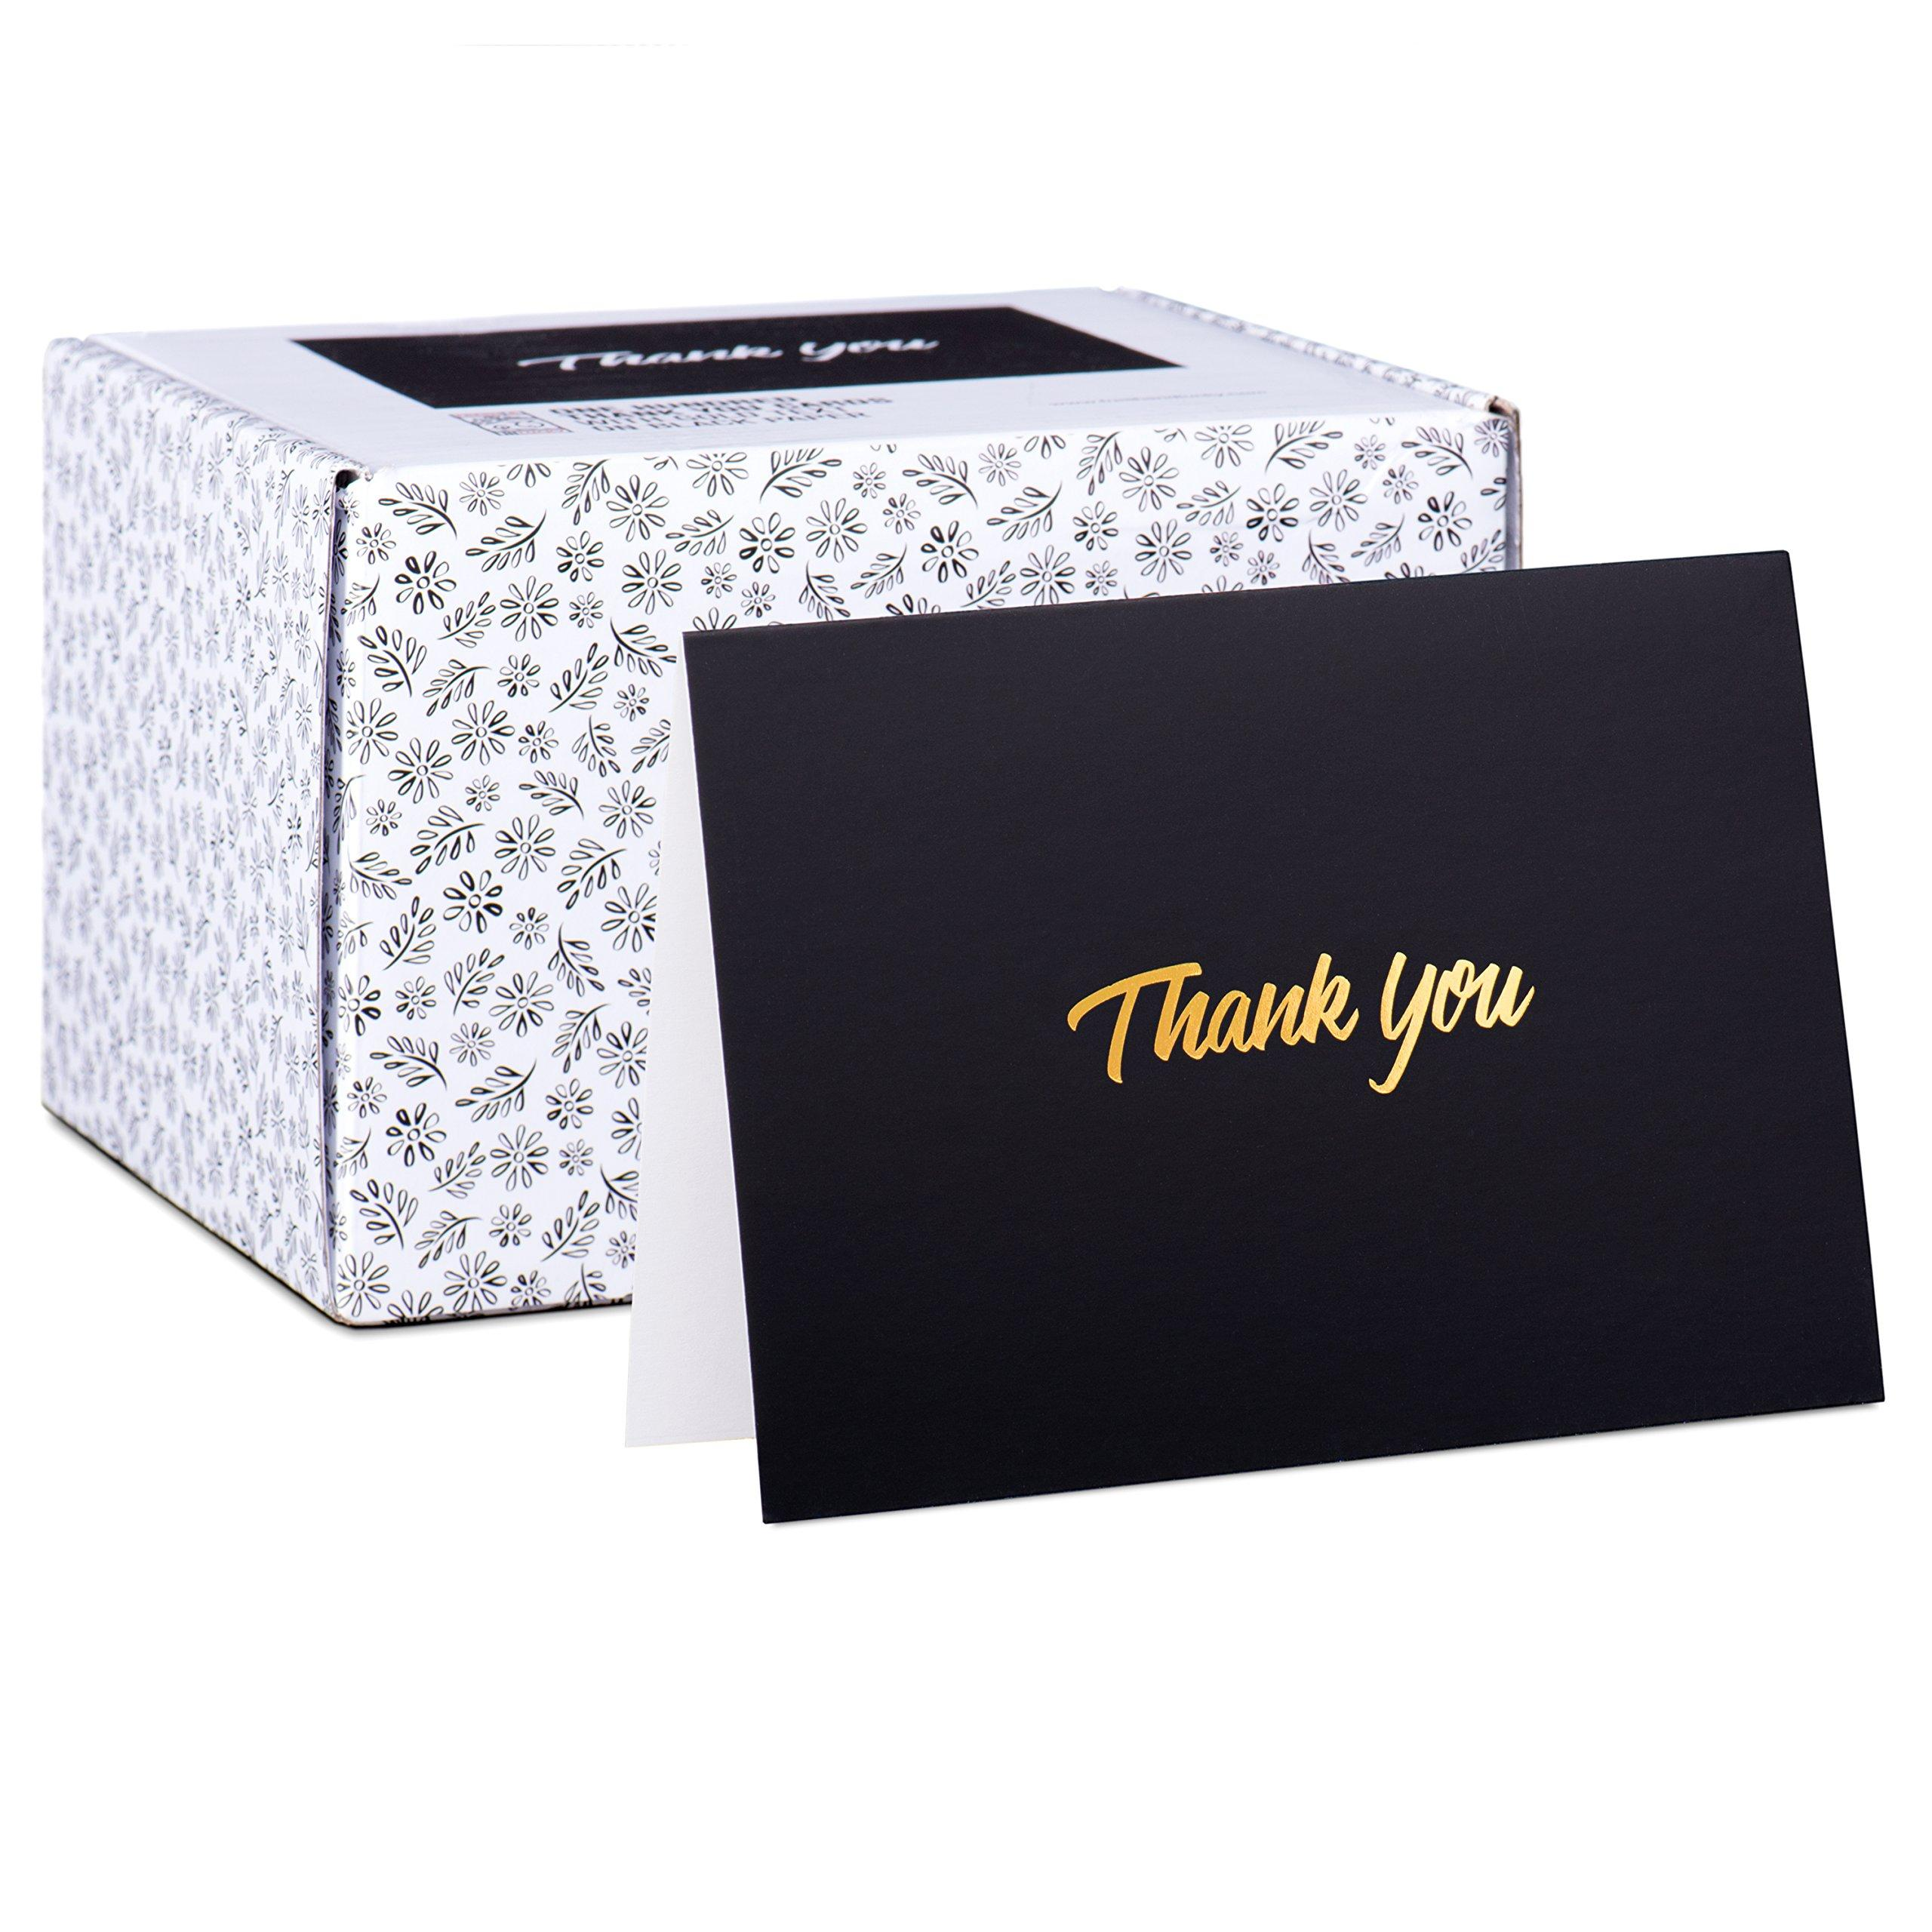 cded471316eba Details about 100 Thank You Cards - Black Bulk Note Cards with Gold Foil  Embossed Letters -